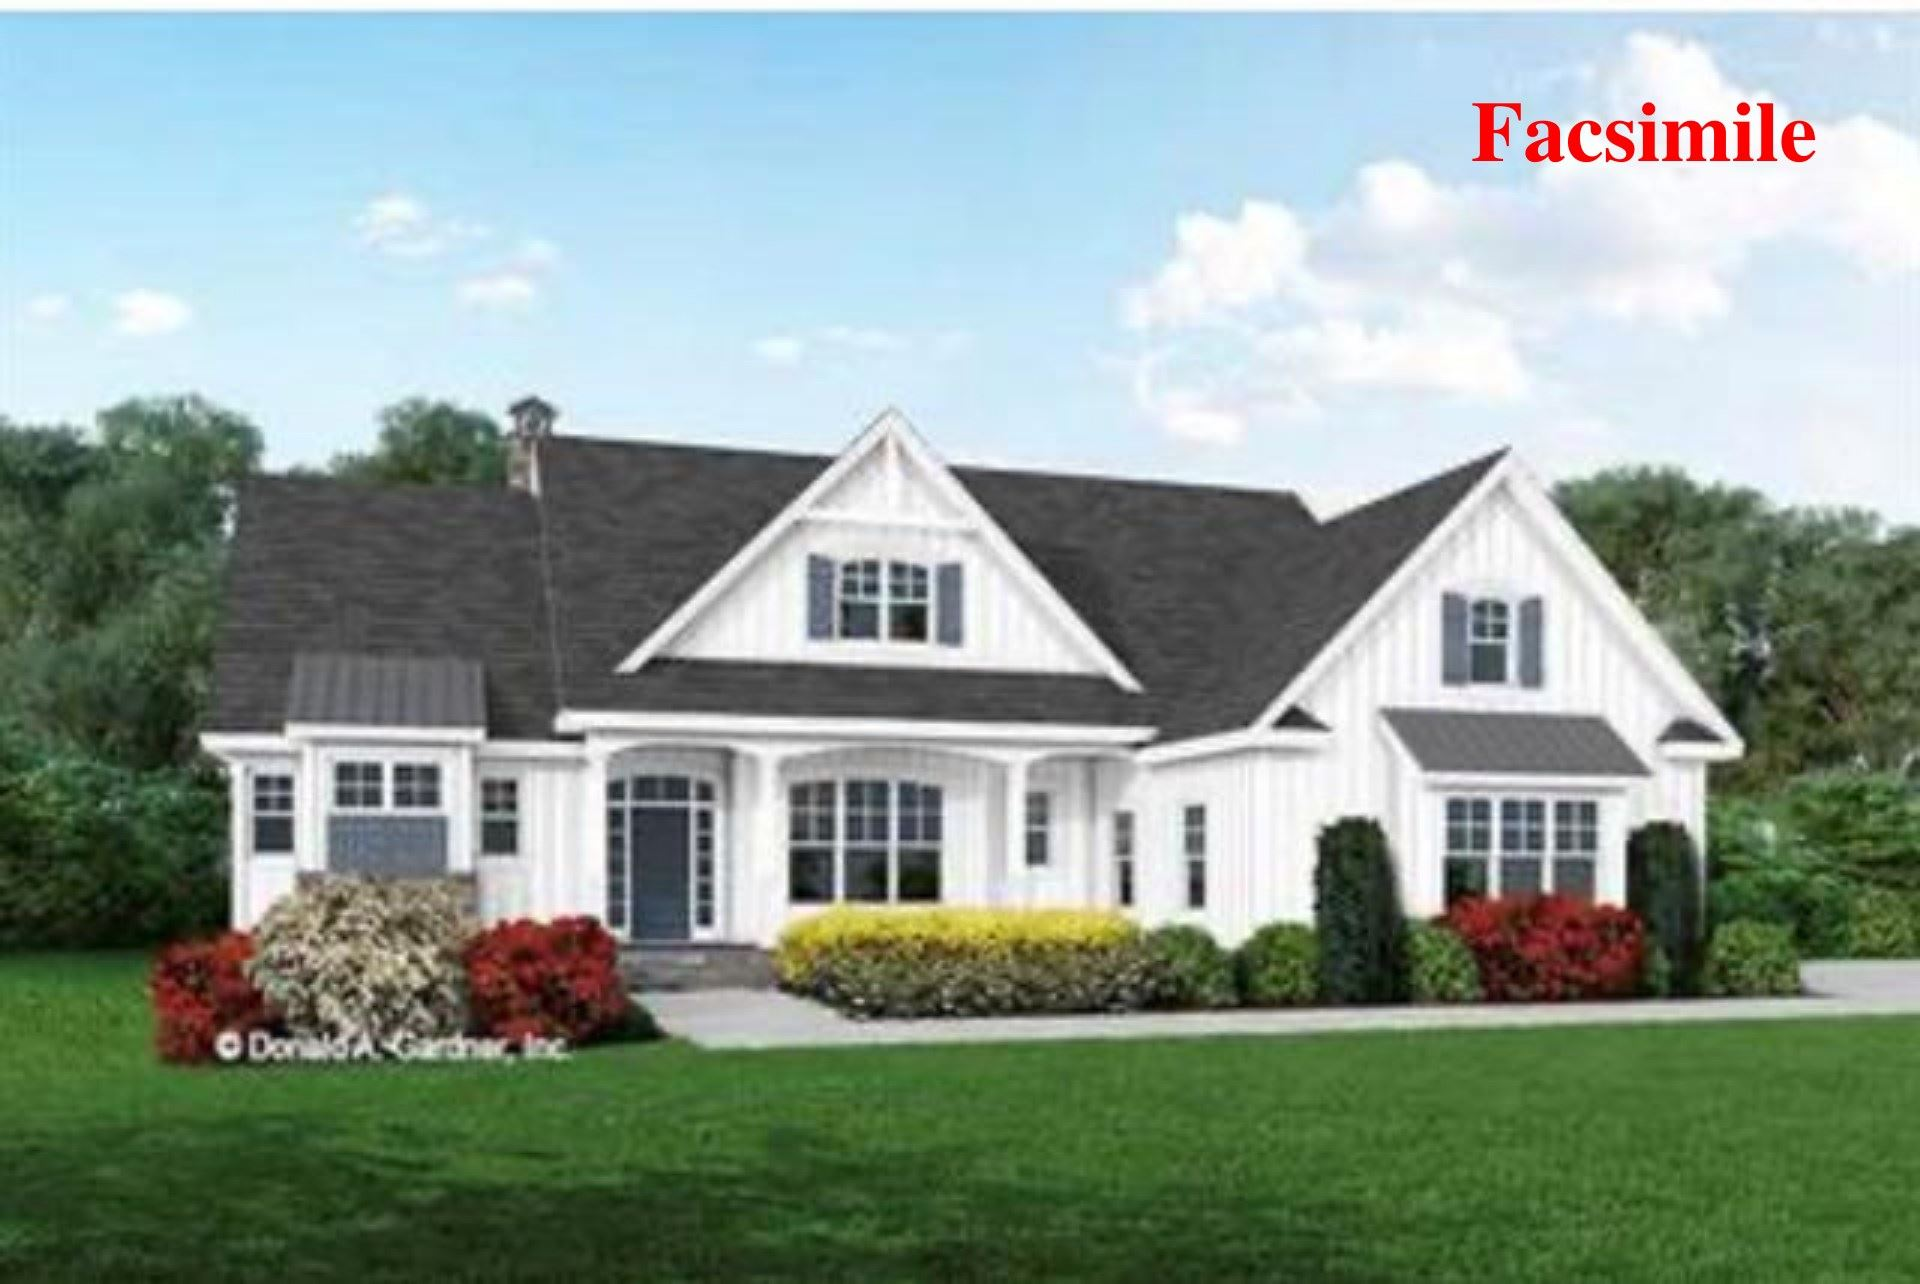 00 Poor Farm Court #5, Wolfeboro, NH 03894 - #: 4812401